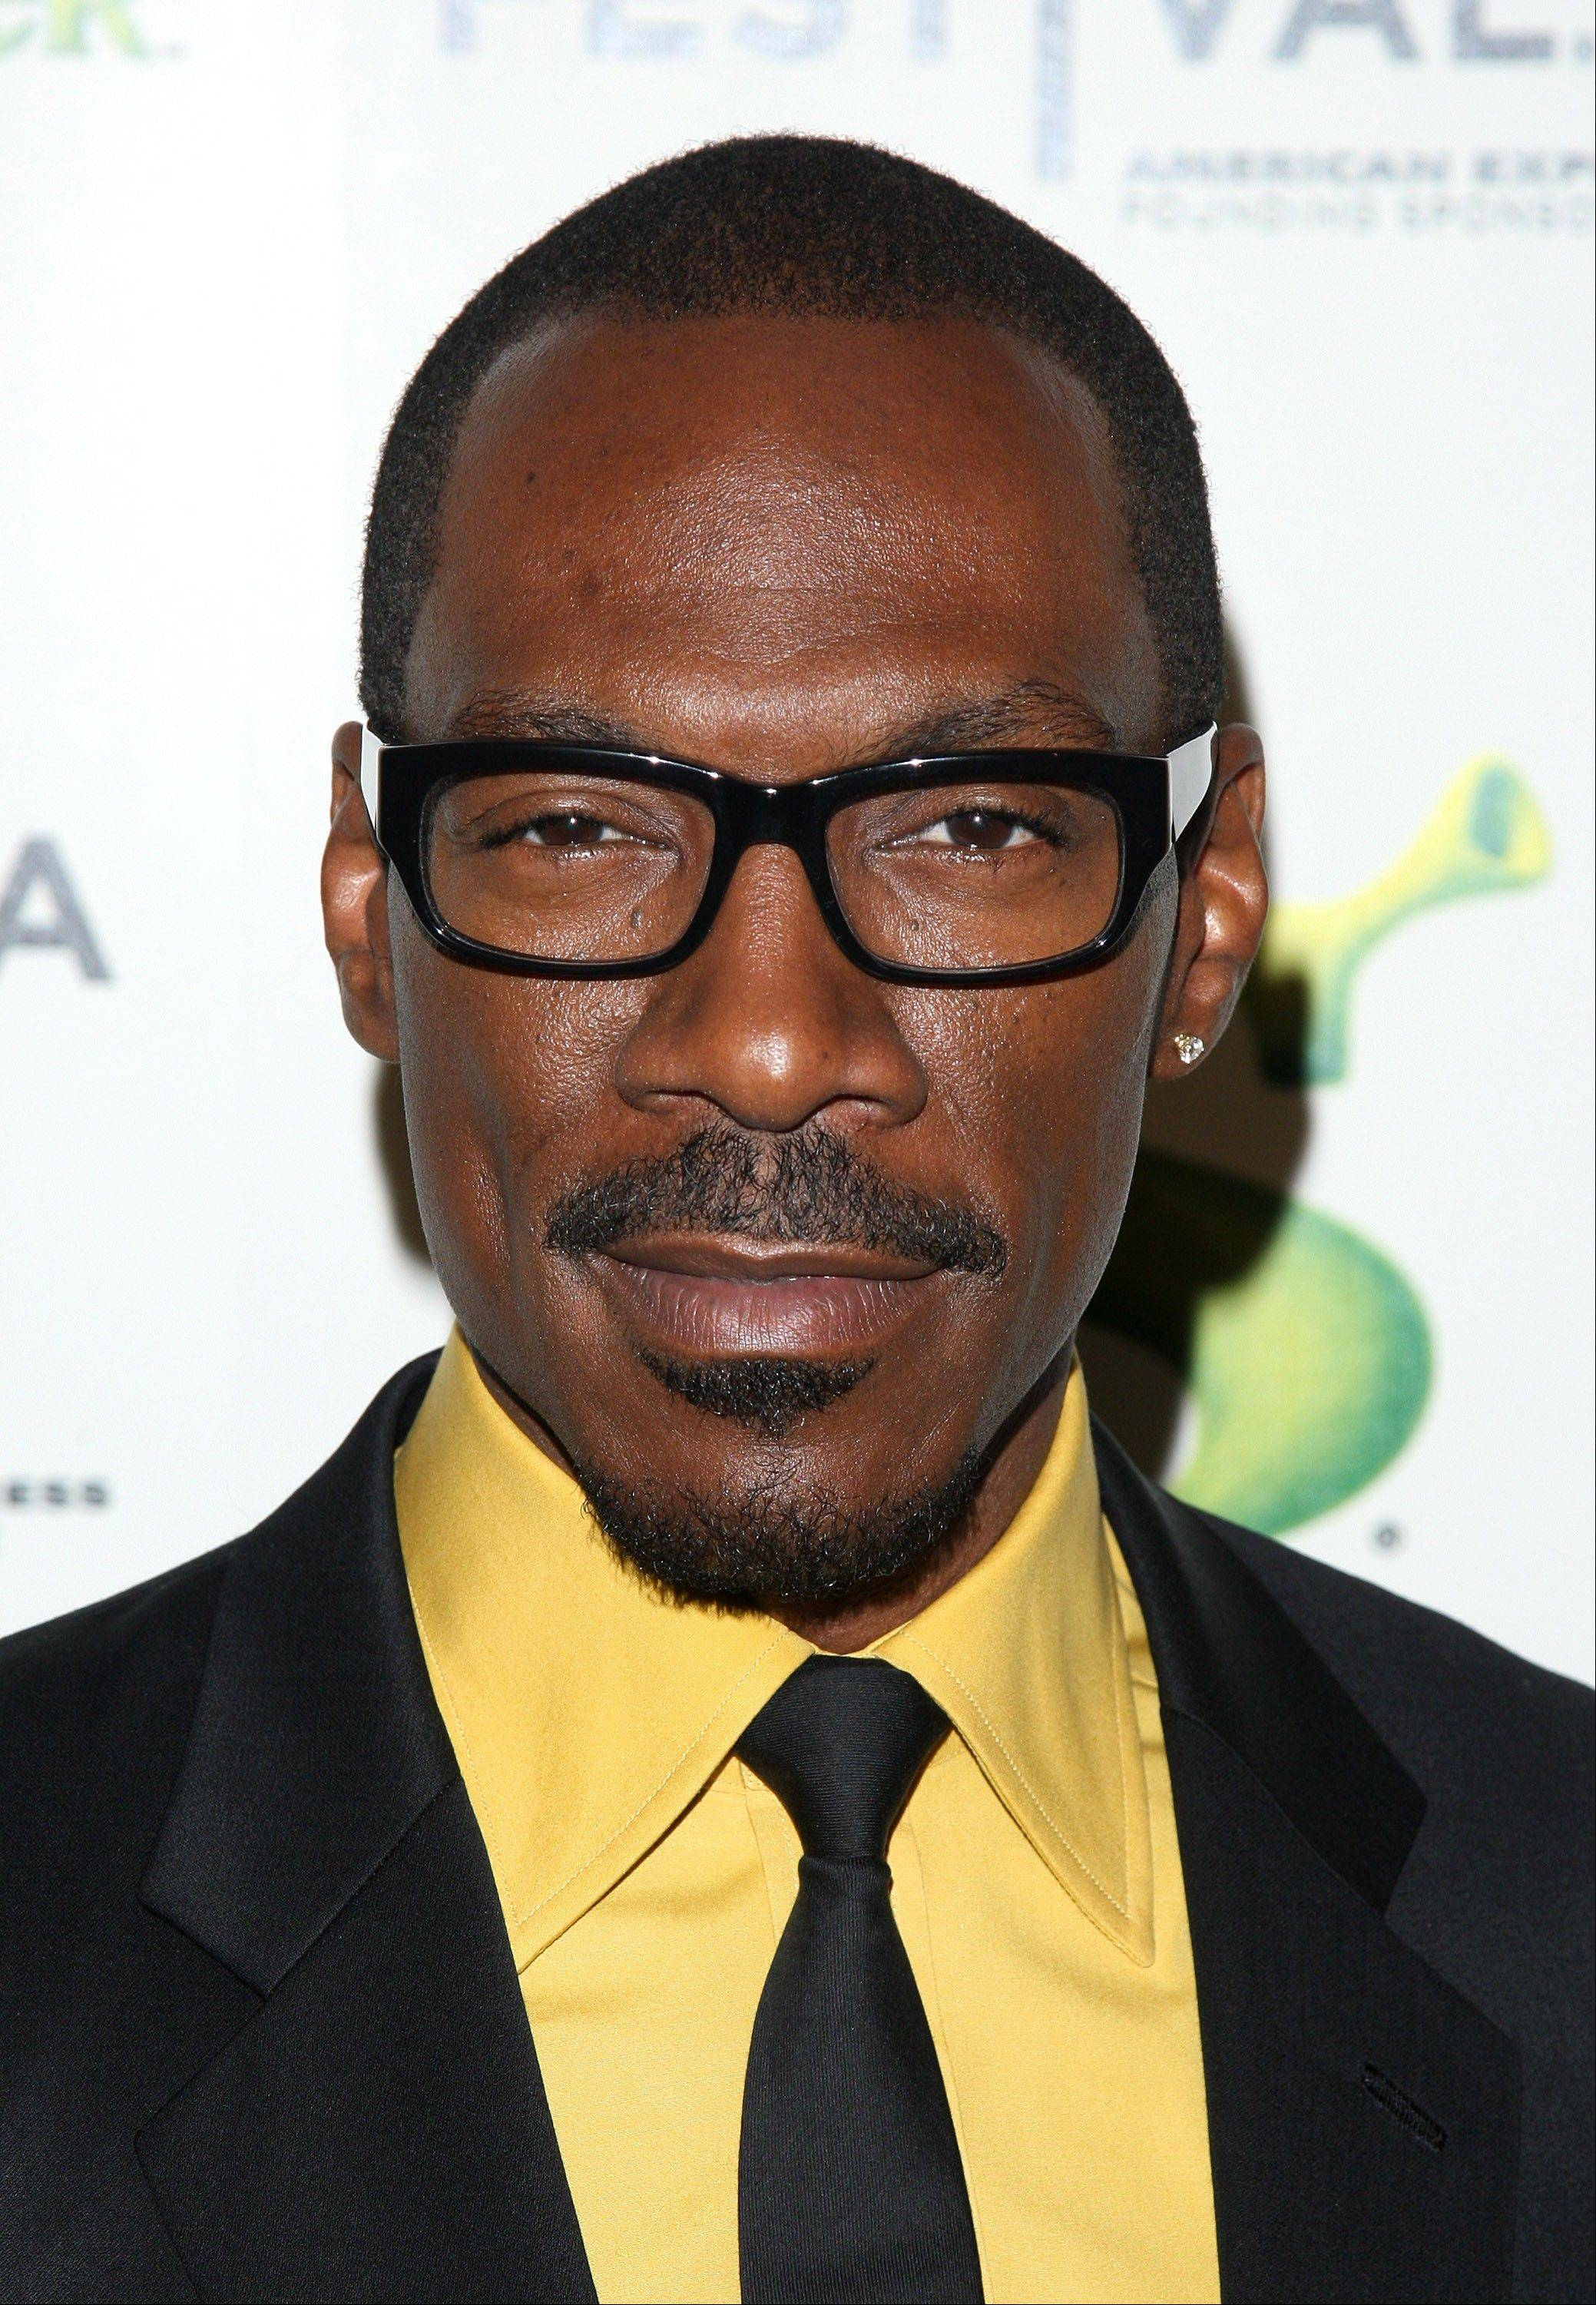 Actor Eddie Murphy will host this year's Academy Awards show on Sunday, Feb. 26.